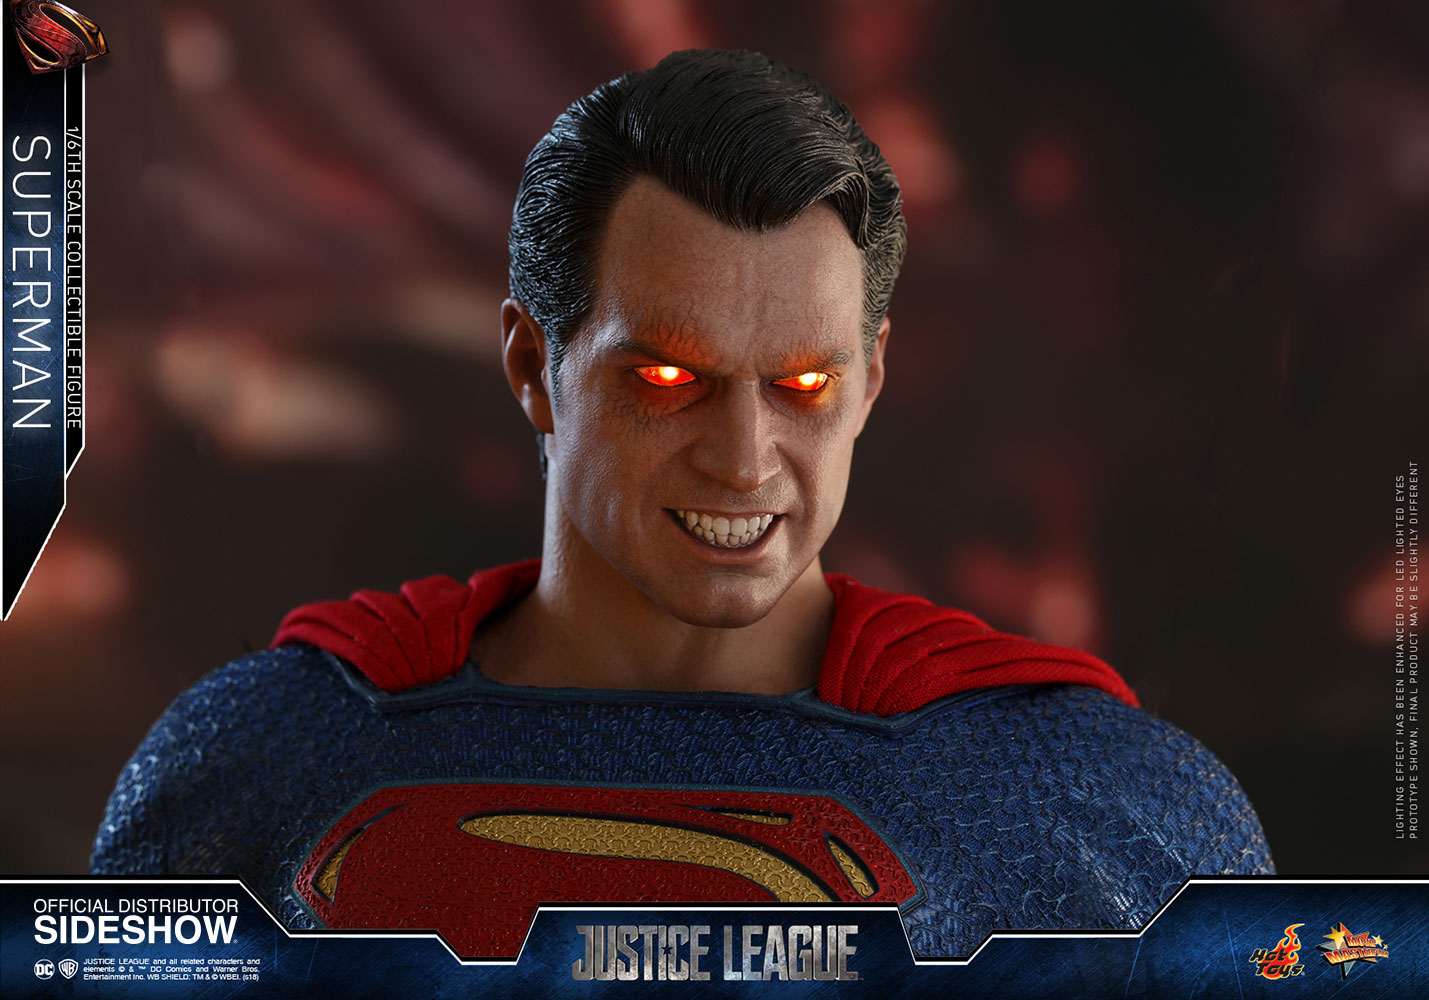 dc-comics-justice-league-superman-sixth-scale-figure-hot-toys-903116-23